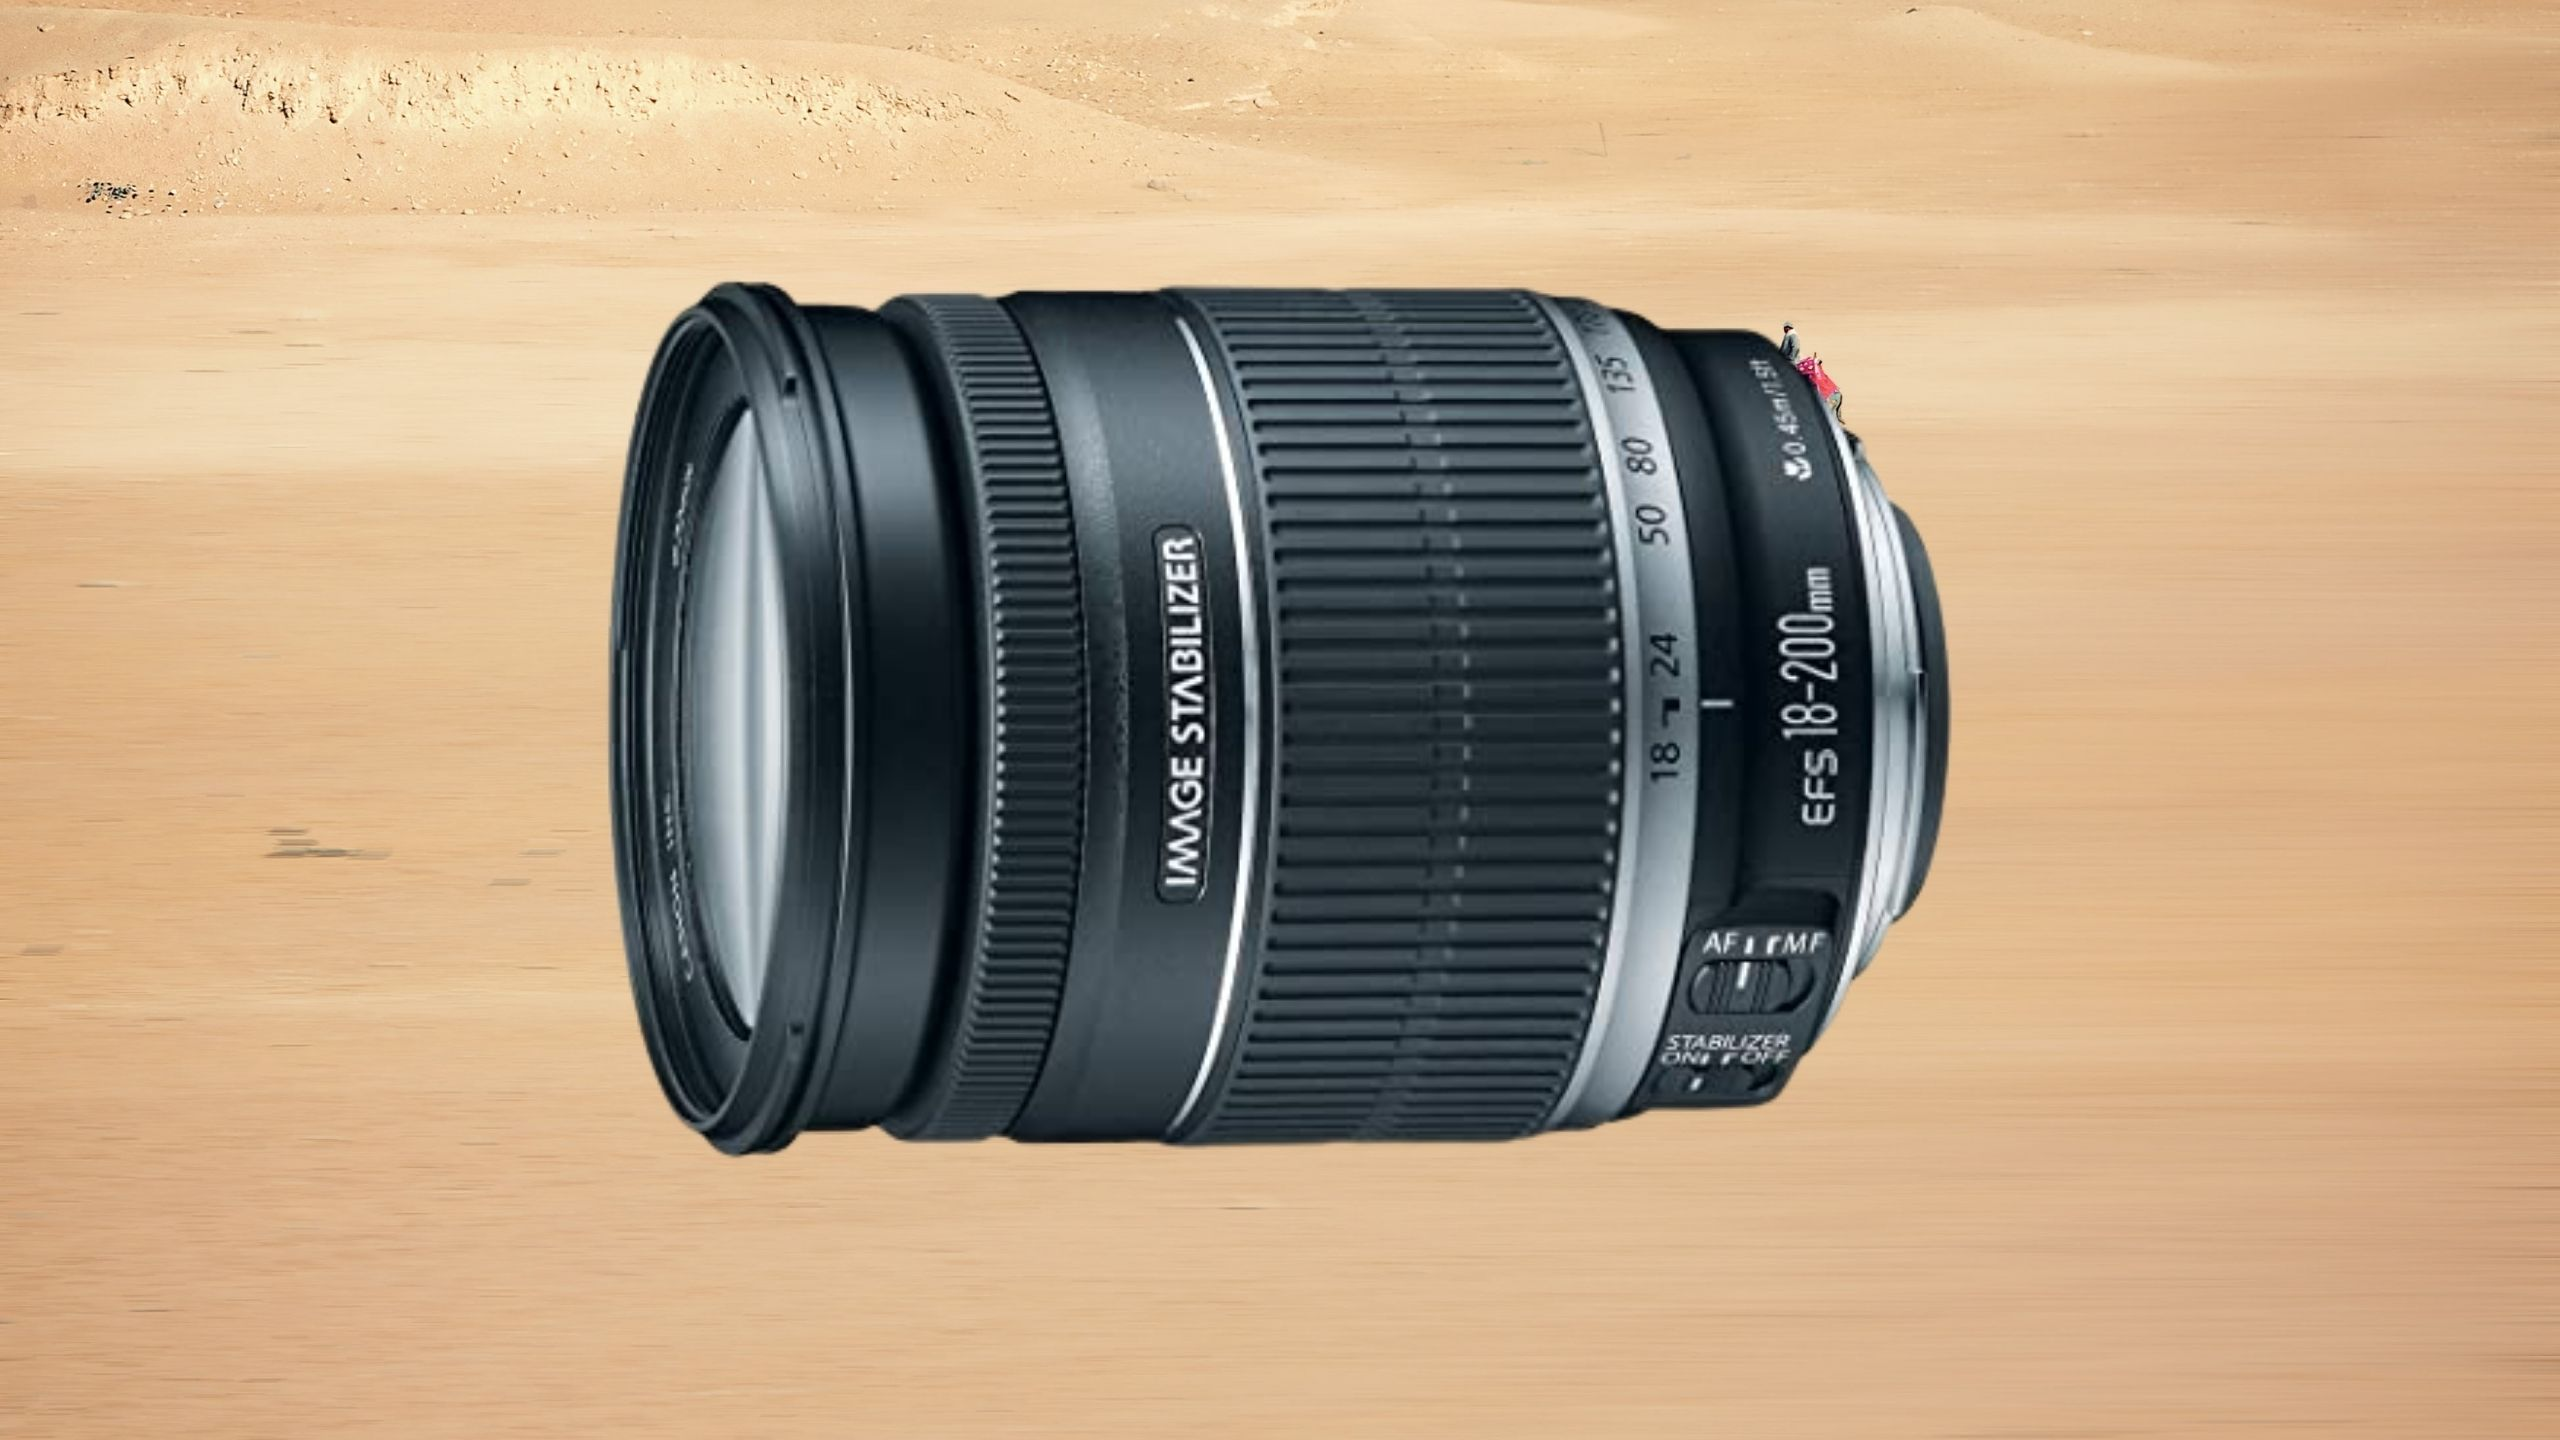 Canon EF-S 18-200mm f/3.5